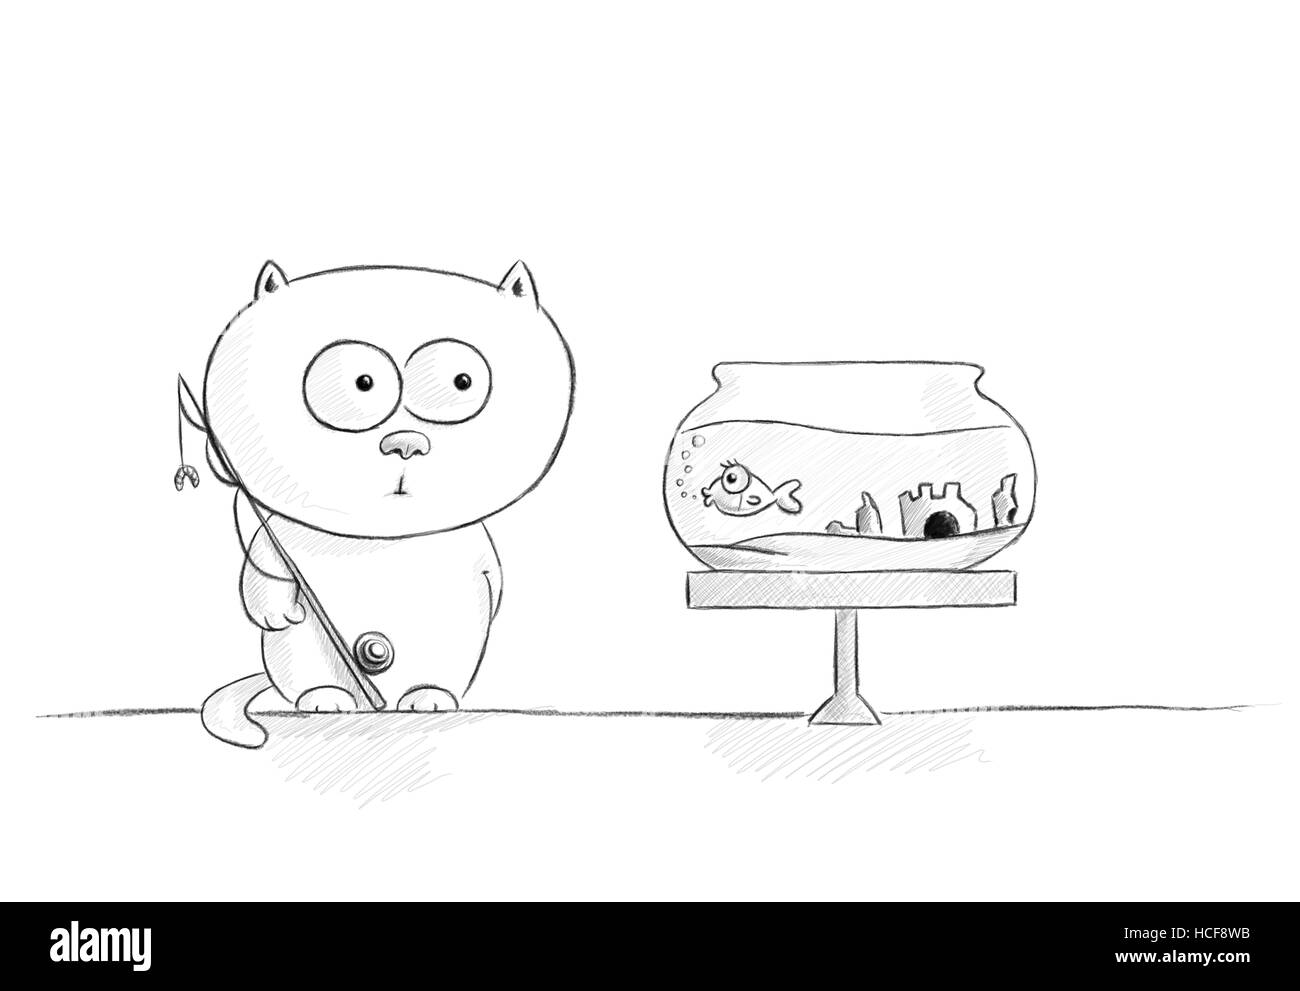 pencil sketch of a lovely white kitty looking curiously at a fish - Stock Image